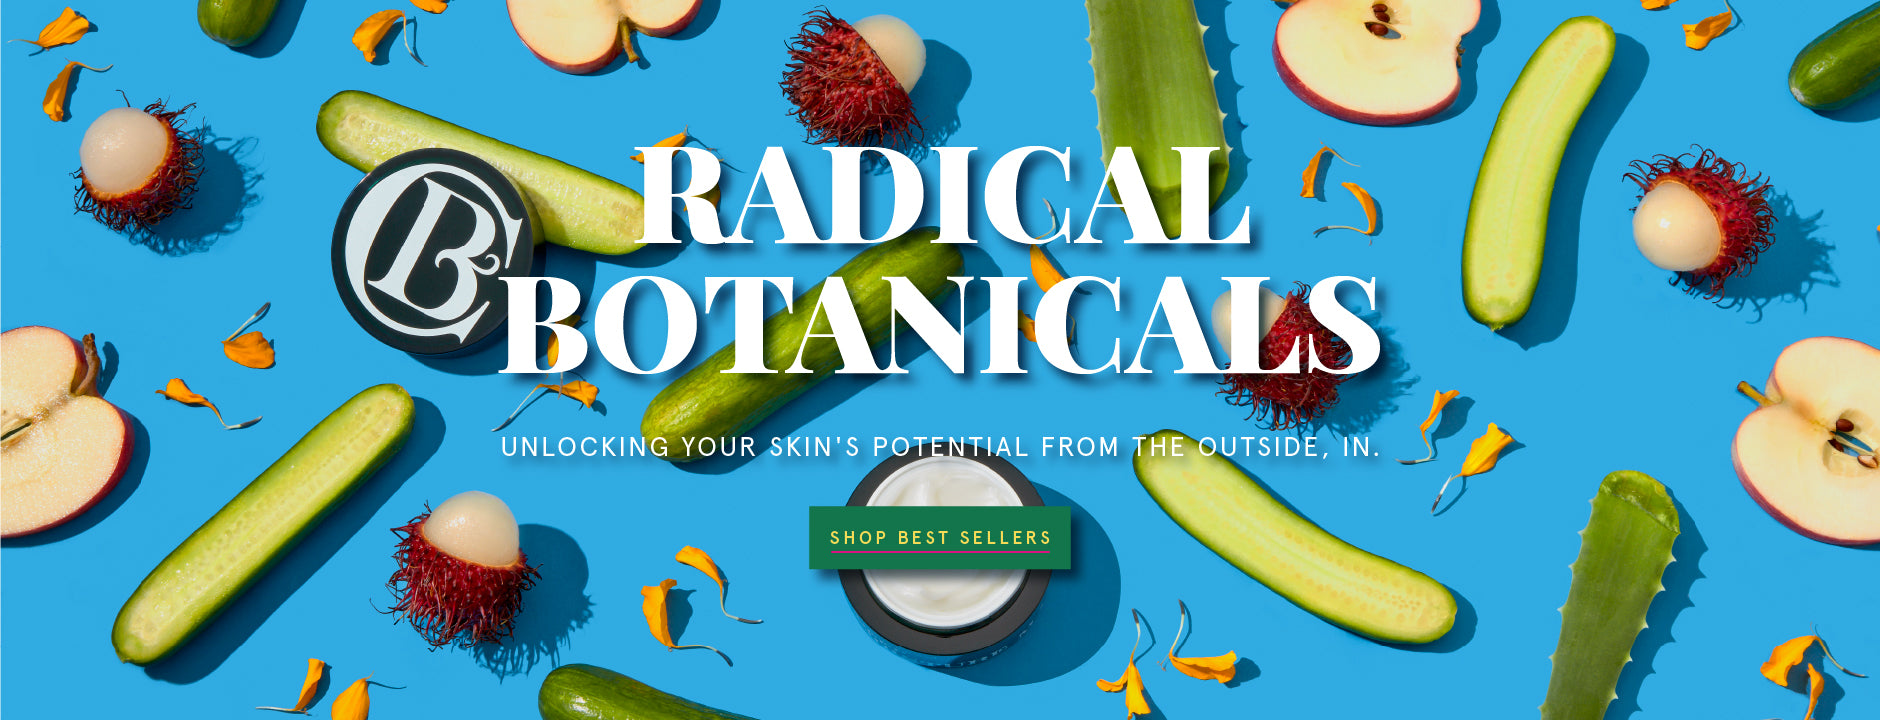 Radical Botanicals Clark's Botanicals Luxury Beauty Products